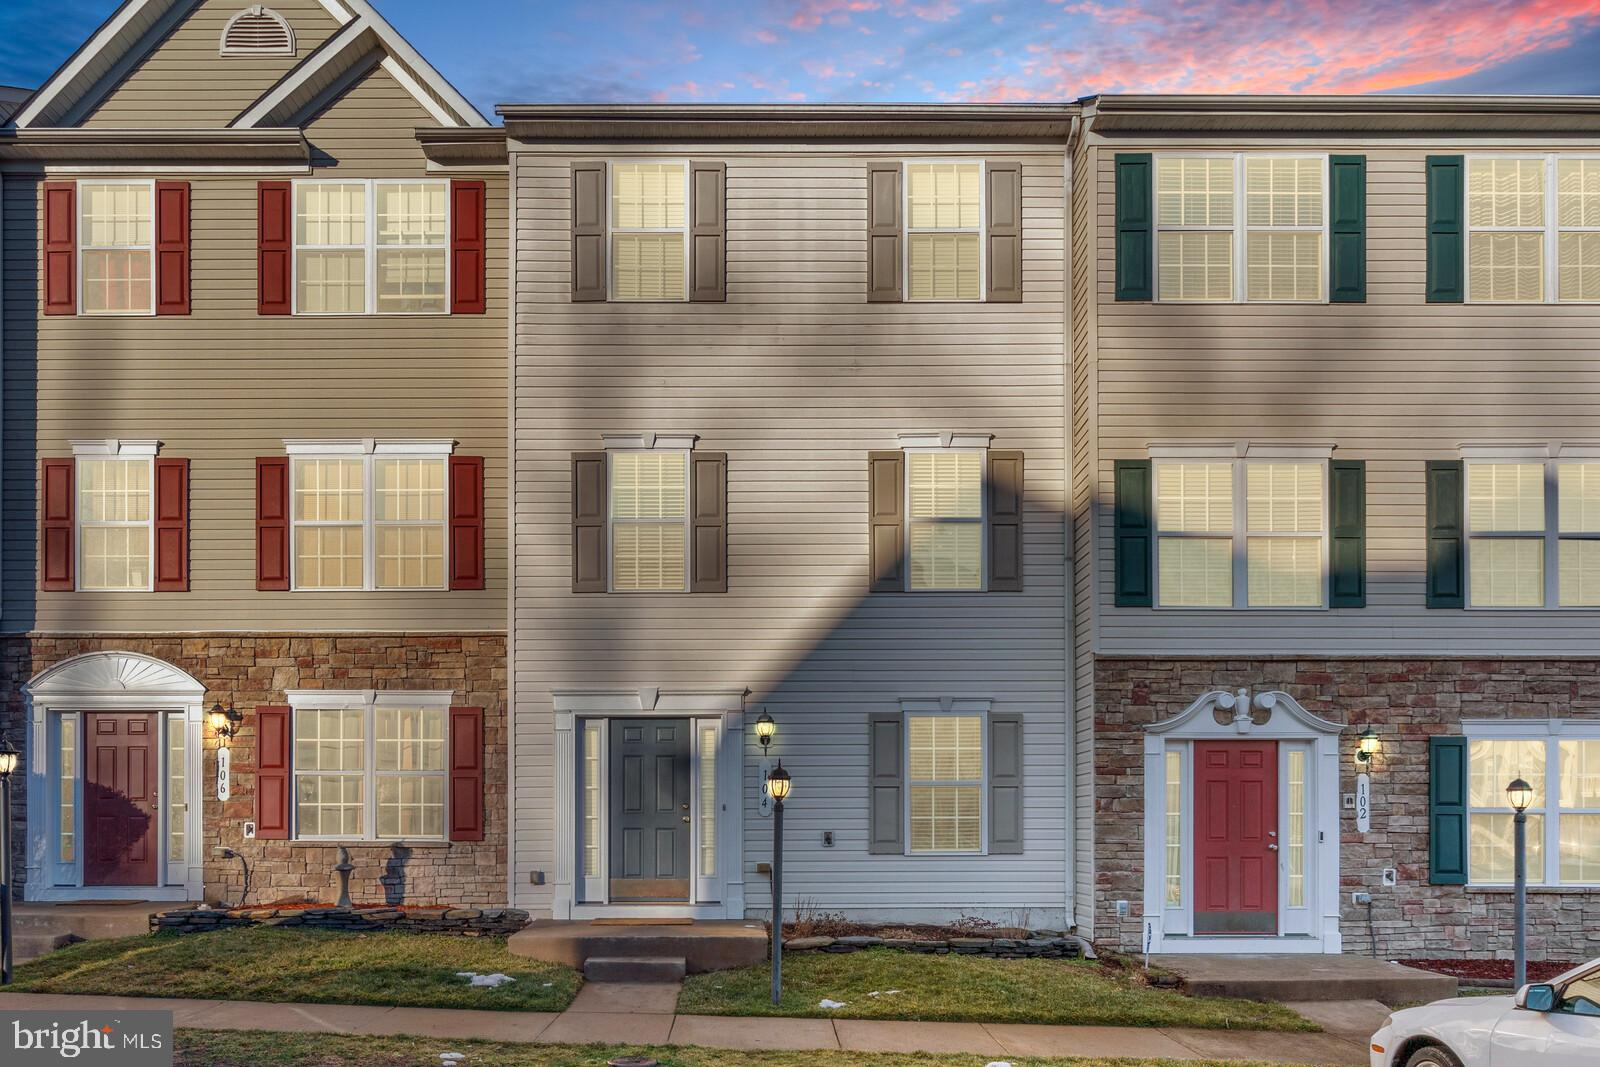 Welcome to 104 Clearwater Ct. This well-maintained townhome is located in sought-after Port Aquia &